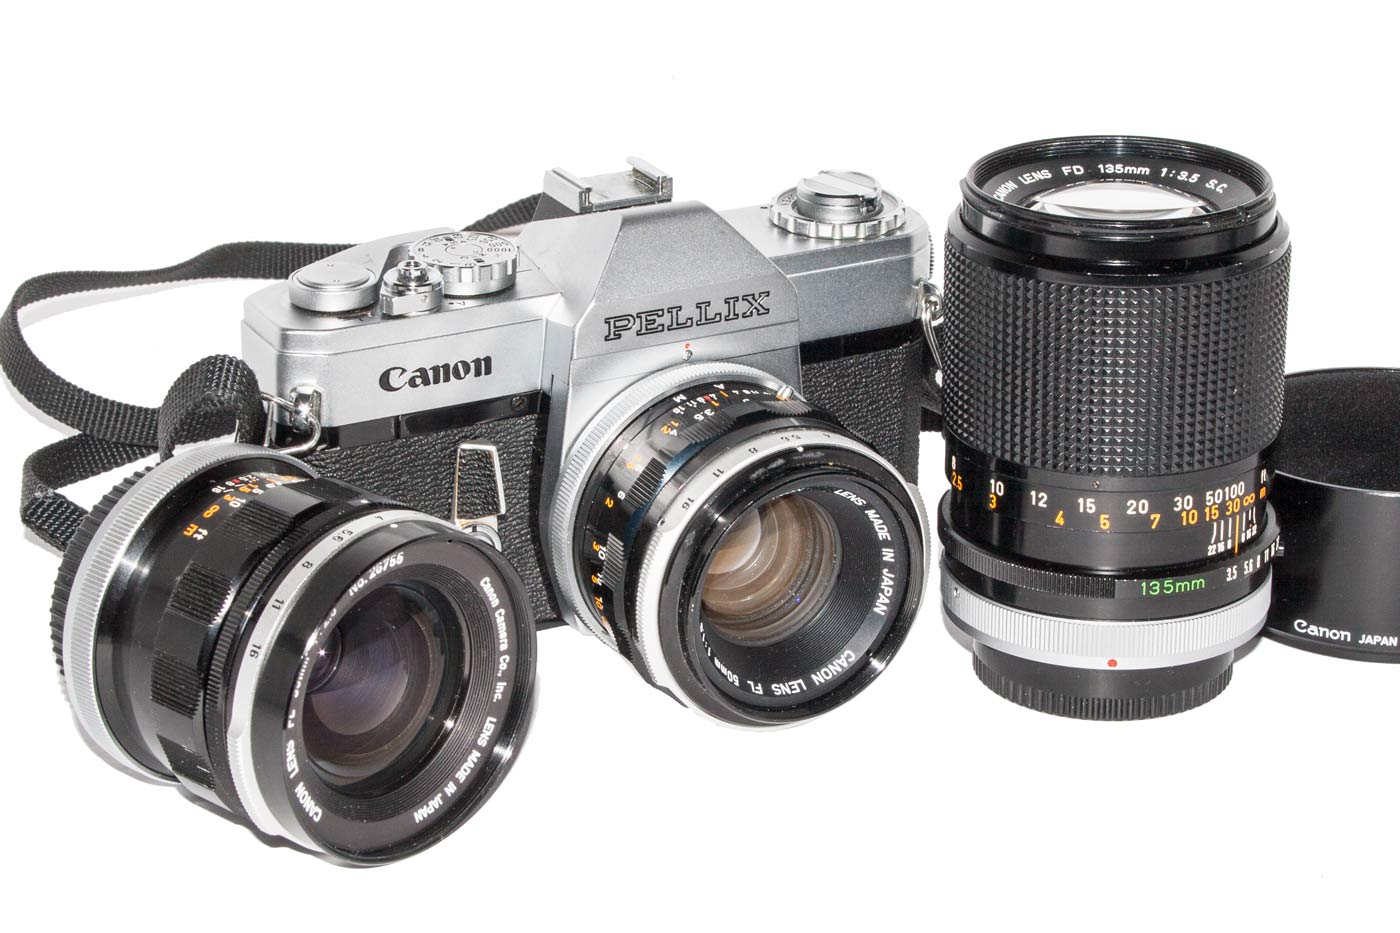 Canon Pellix with Lenses